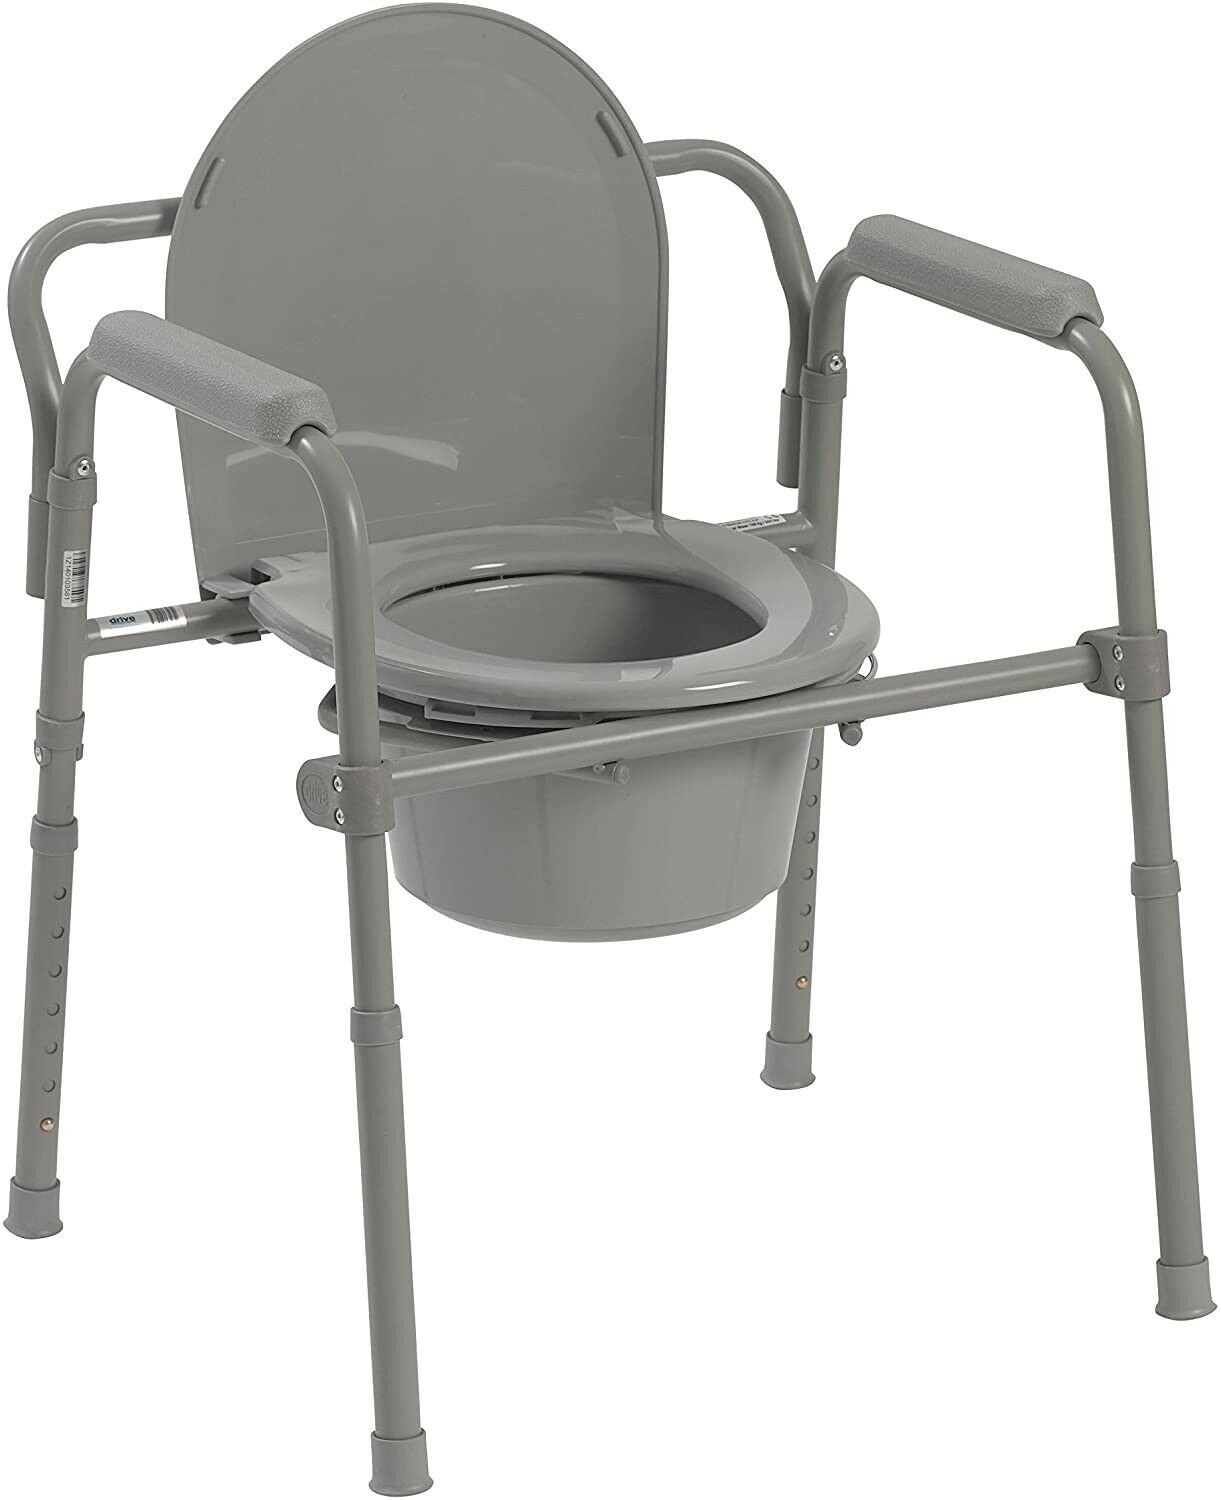 Lightweight Folding Commode Chair Potty Chair Portable toile